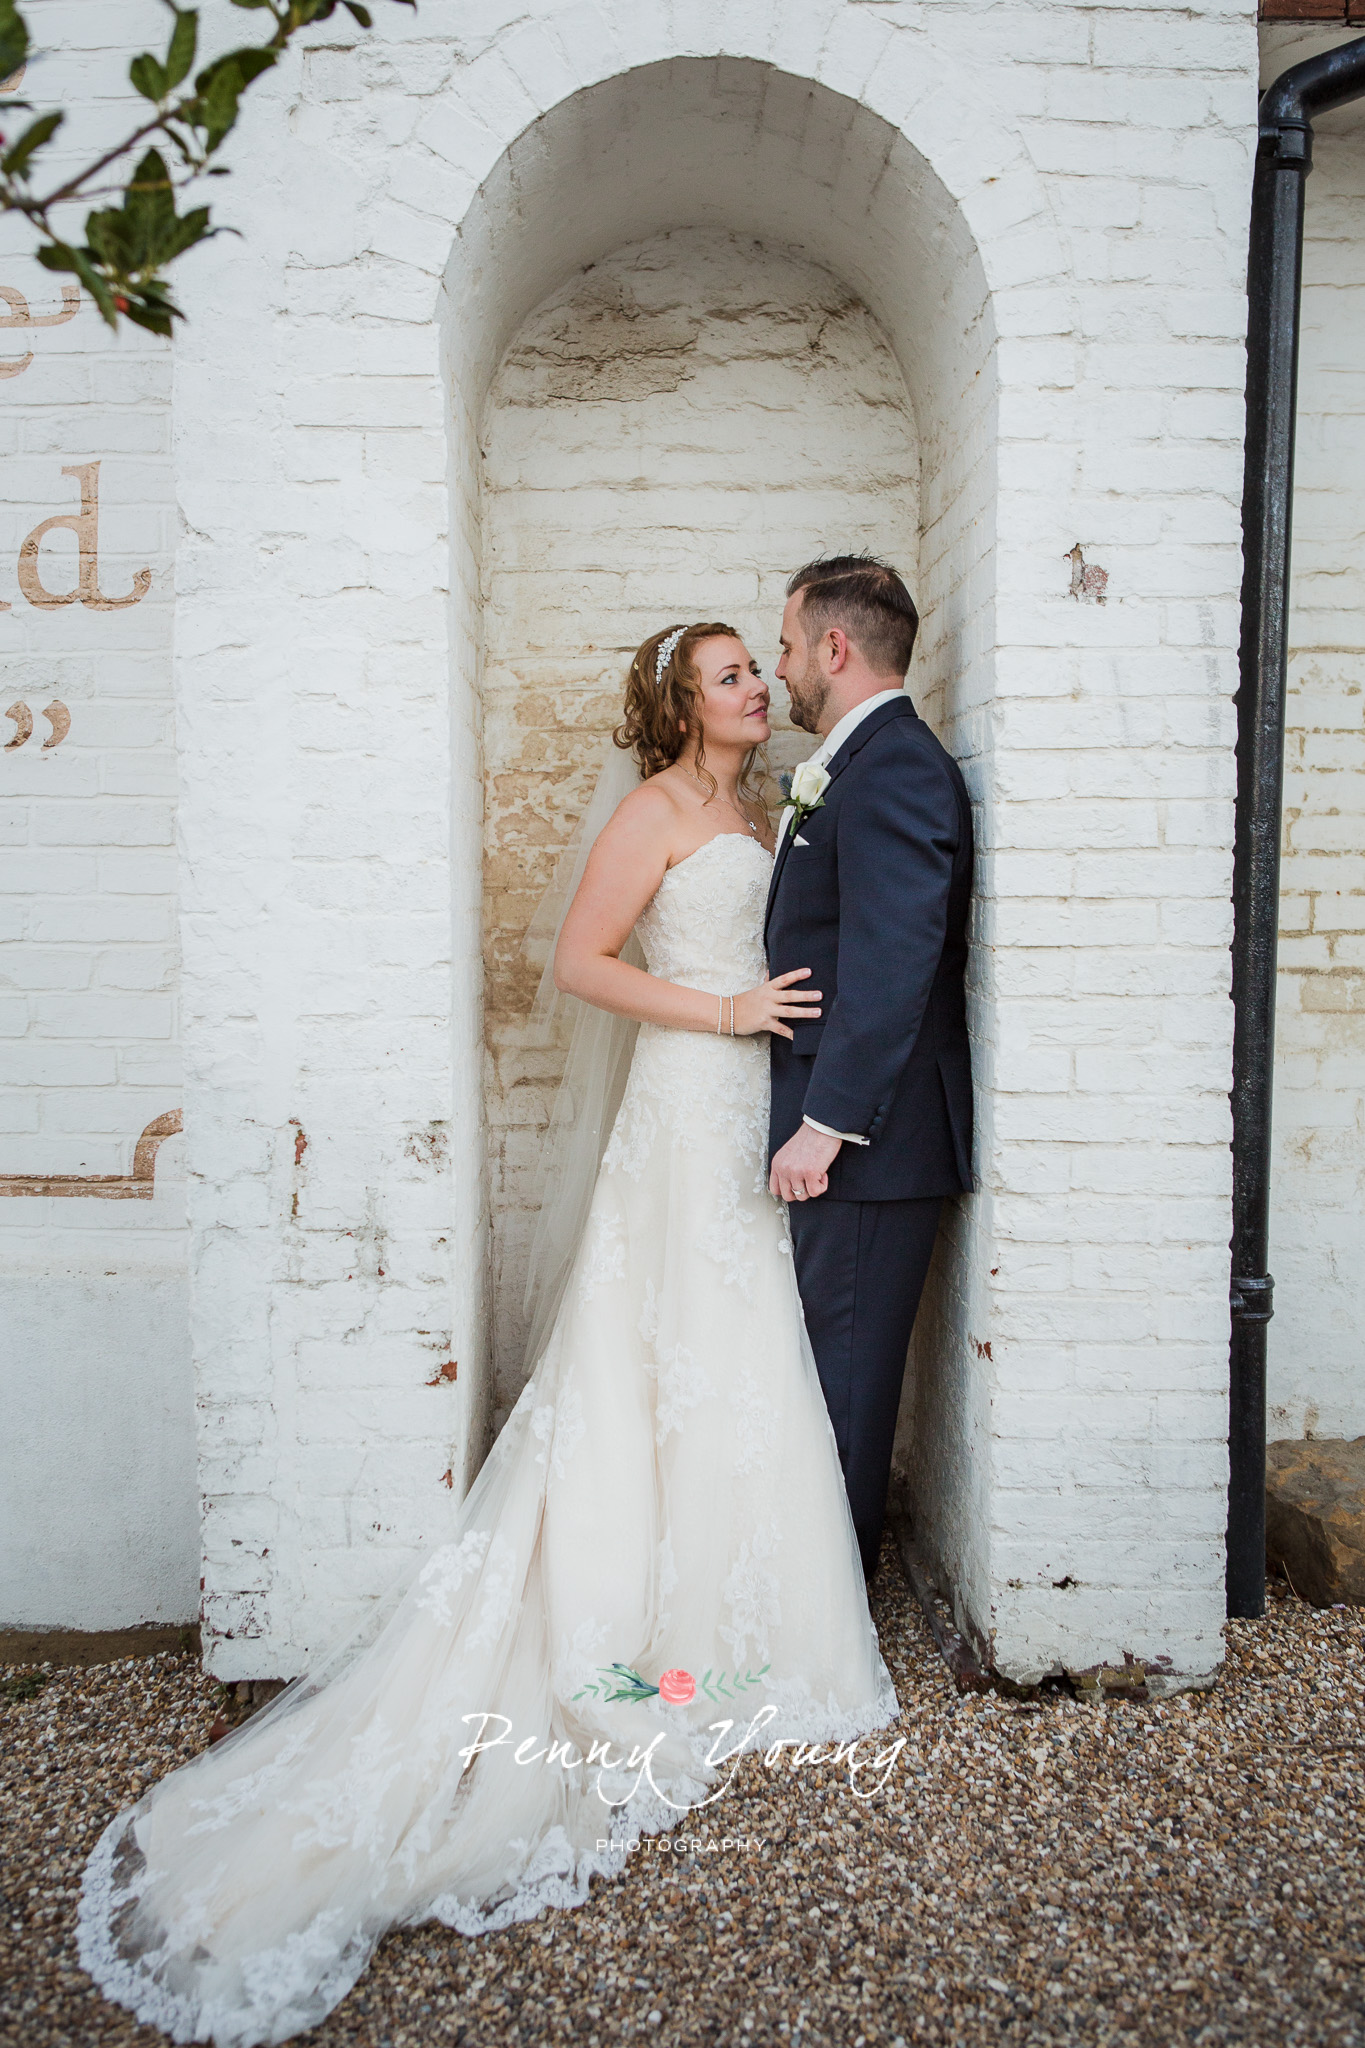 Penny_Young_Photography_The_Bell_Ticehurst_Wedding-Photography_Rachel_Matt_385